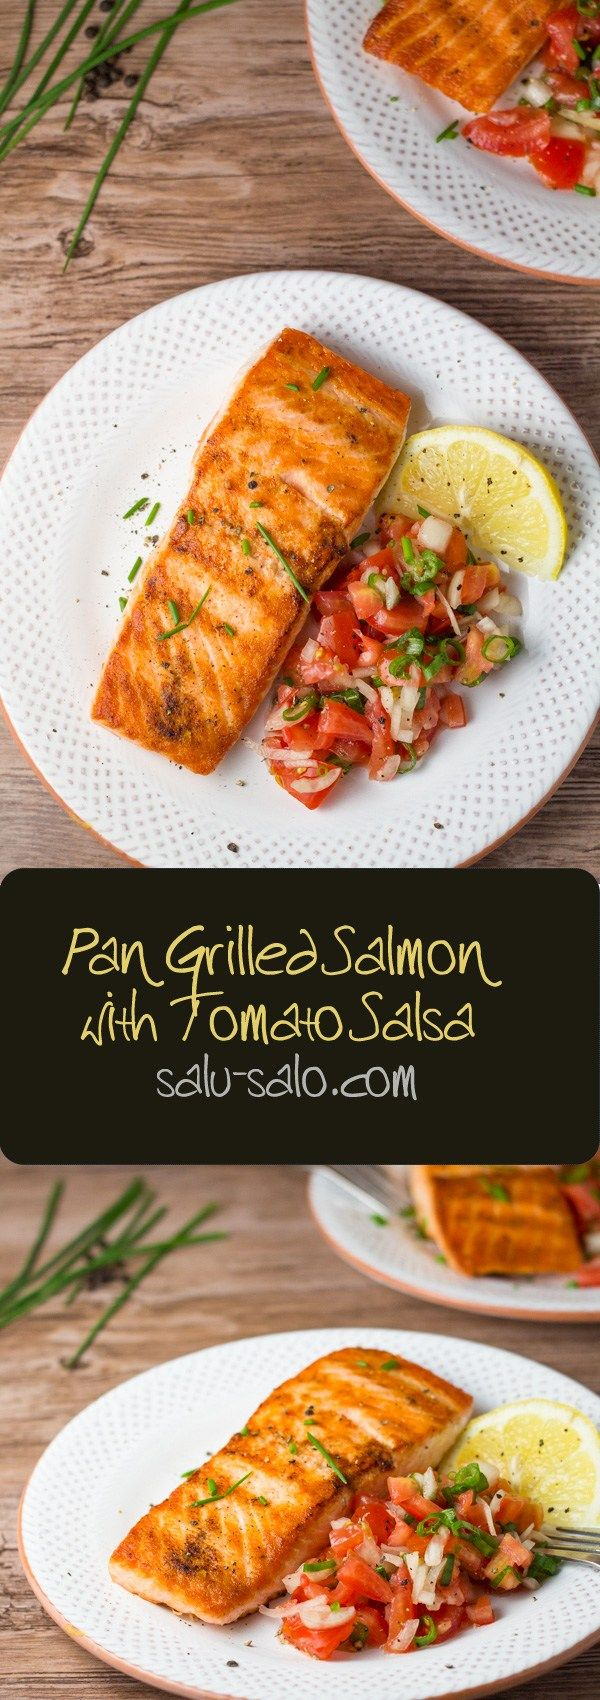 Pan Grilled Salmon with Tomato Salsa